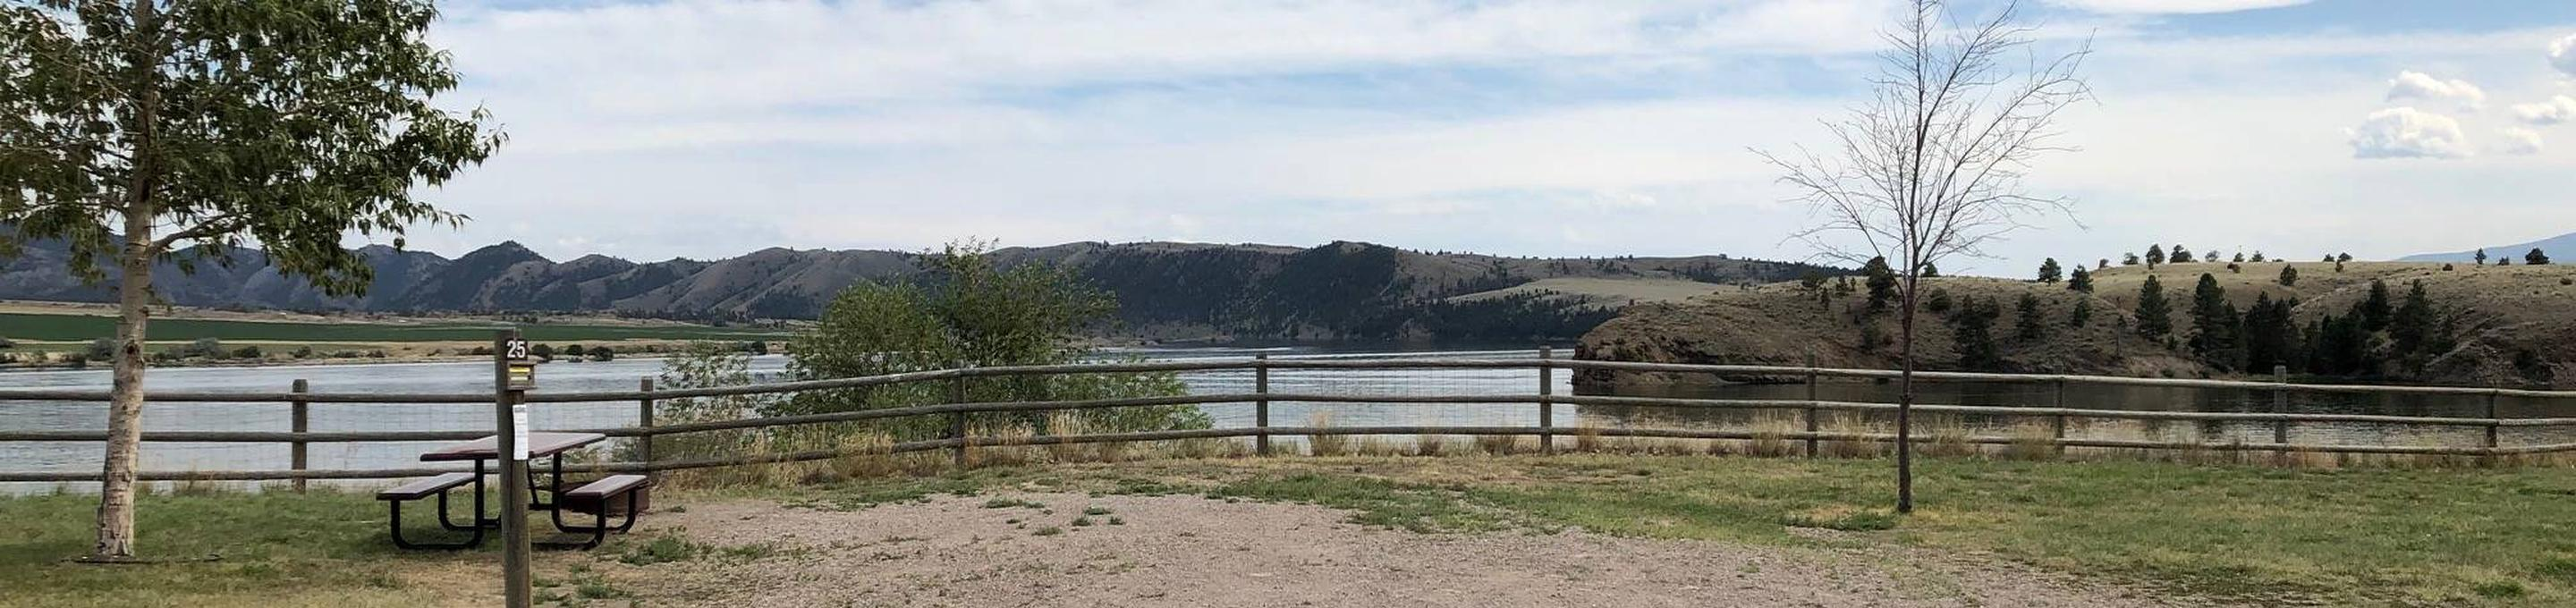 Site 25 at BLM White Sandy Campground. Paved access within campground. Gravel camping pad with fire pit and picnic table. Wooden fence in the background to protect bank stabilization. Lakeside campsite on Hauser Lake.Site 25 BLM White Sandy Campground.